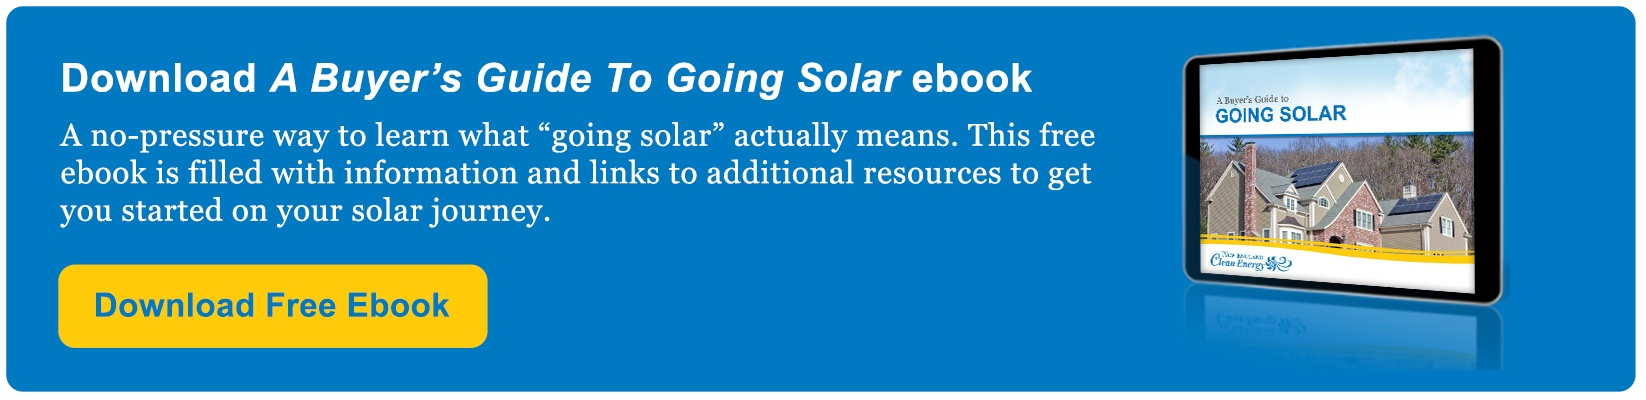 "Download A Buyer's Guide To Going Solar ebook to learn what ""going solar"" actually means to get you started on your solar journey."